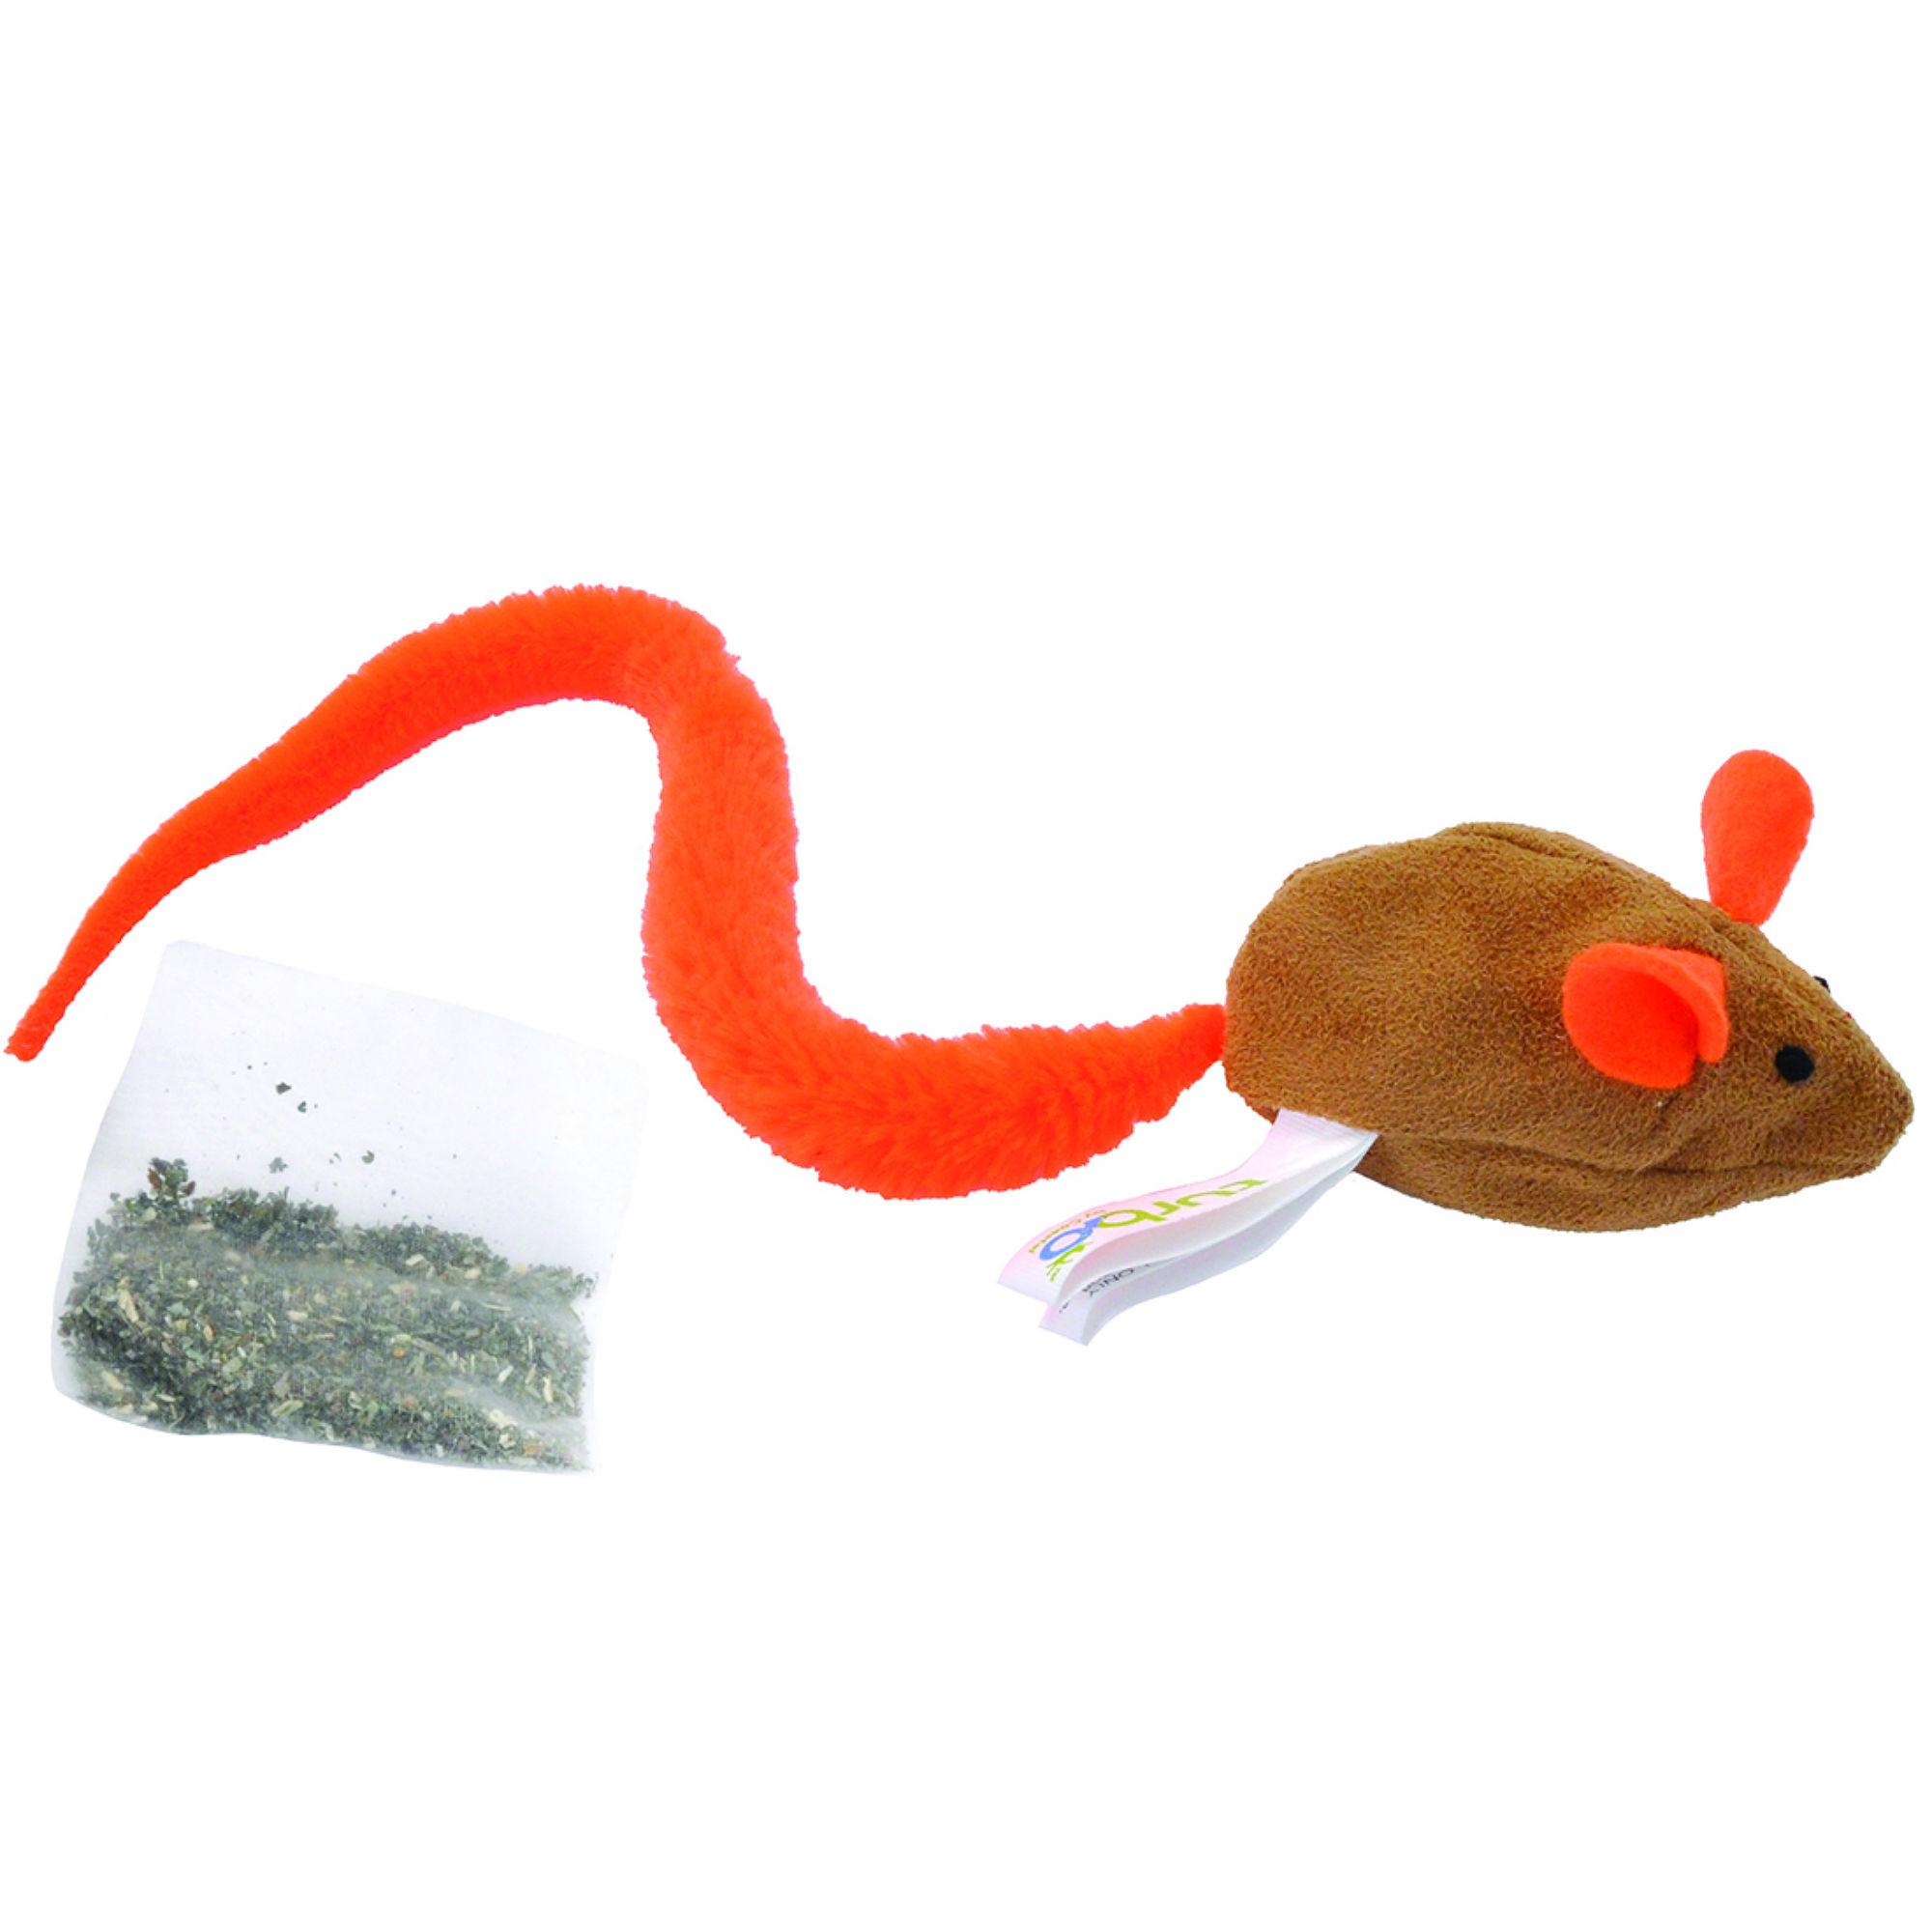 Turbo Cat Turbo Tail Cat Toy - Catnip Belly Crinkle Mouse